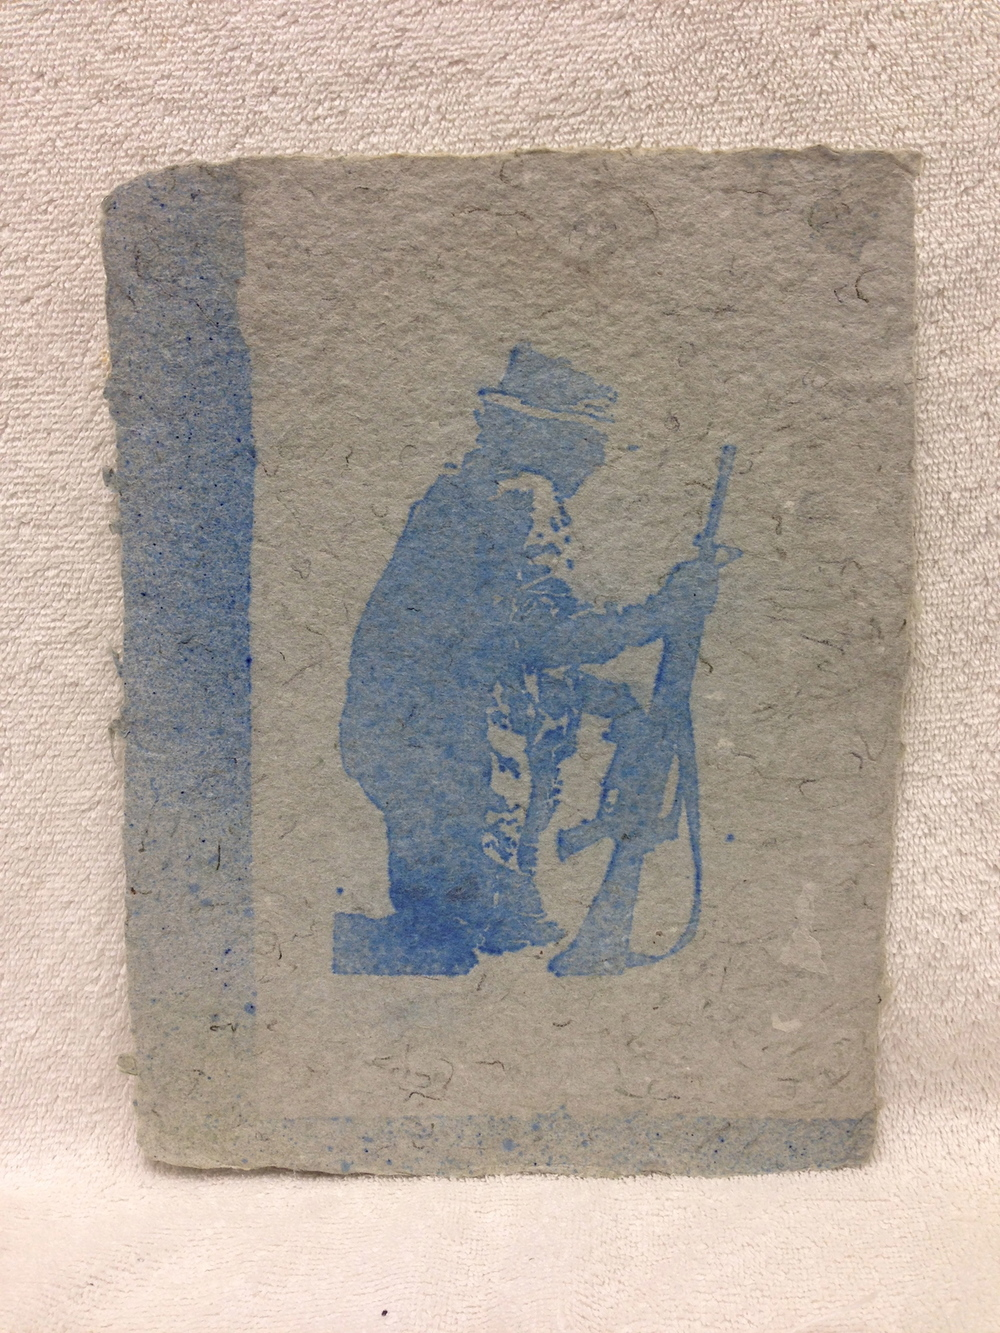 Anonymous _Untitled_ 2011 Pulp spray on handmade paper made from military uniforms PCNJ Weekly Workshop IMG_0970.jpg